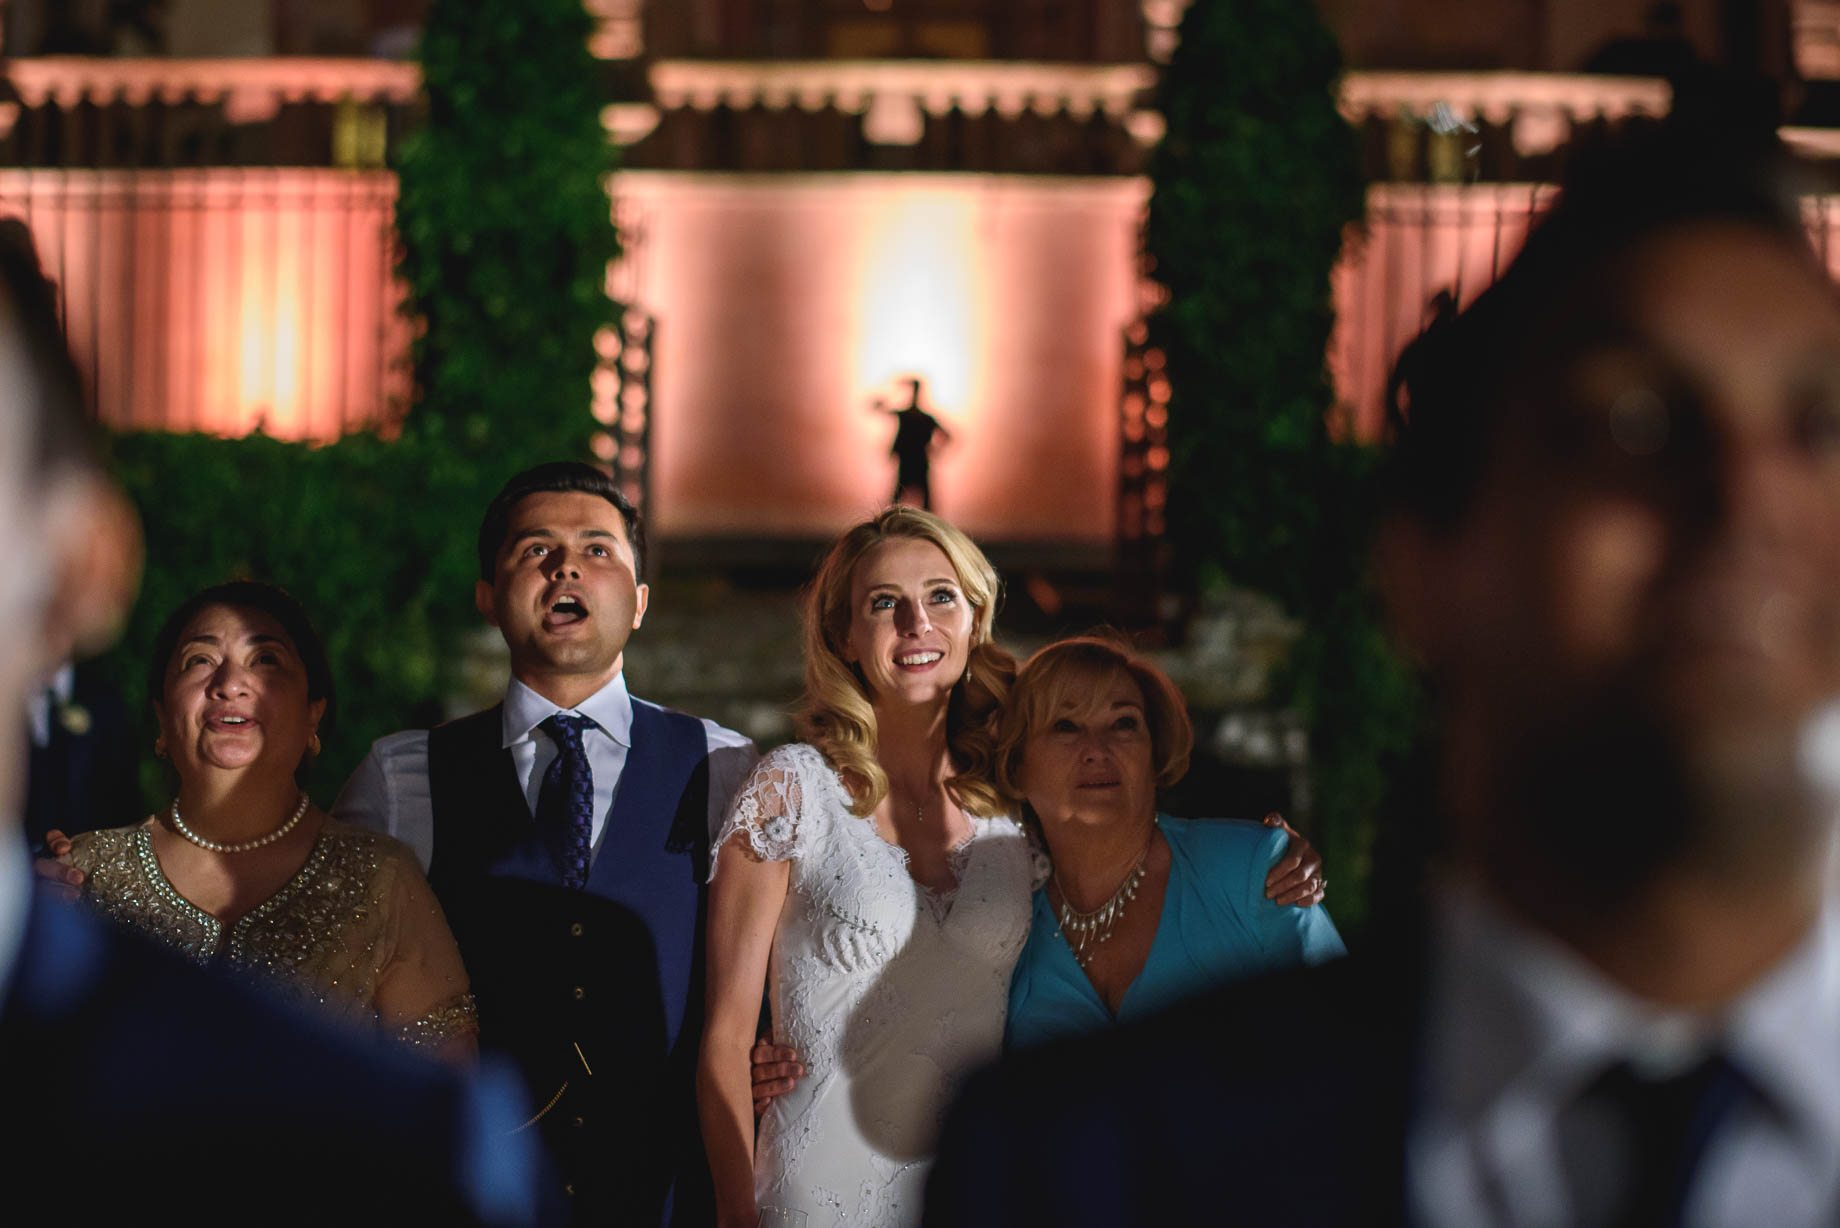 Tuscany wedding photography - Roisin and Moubin - Guy Collier Photography (213 of 251)